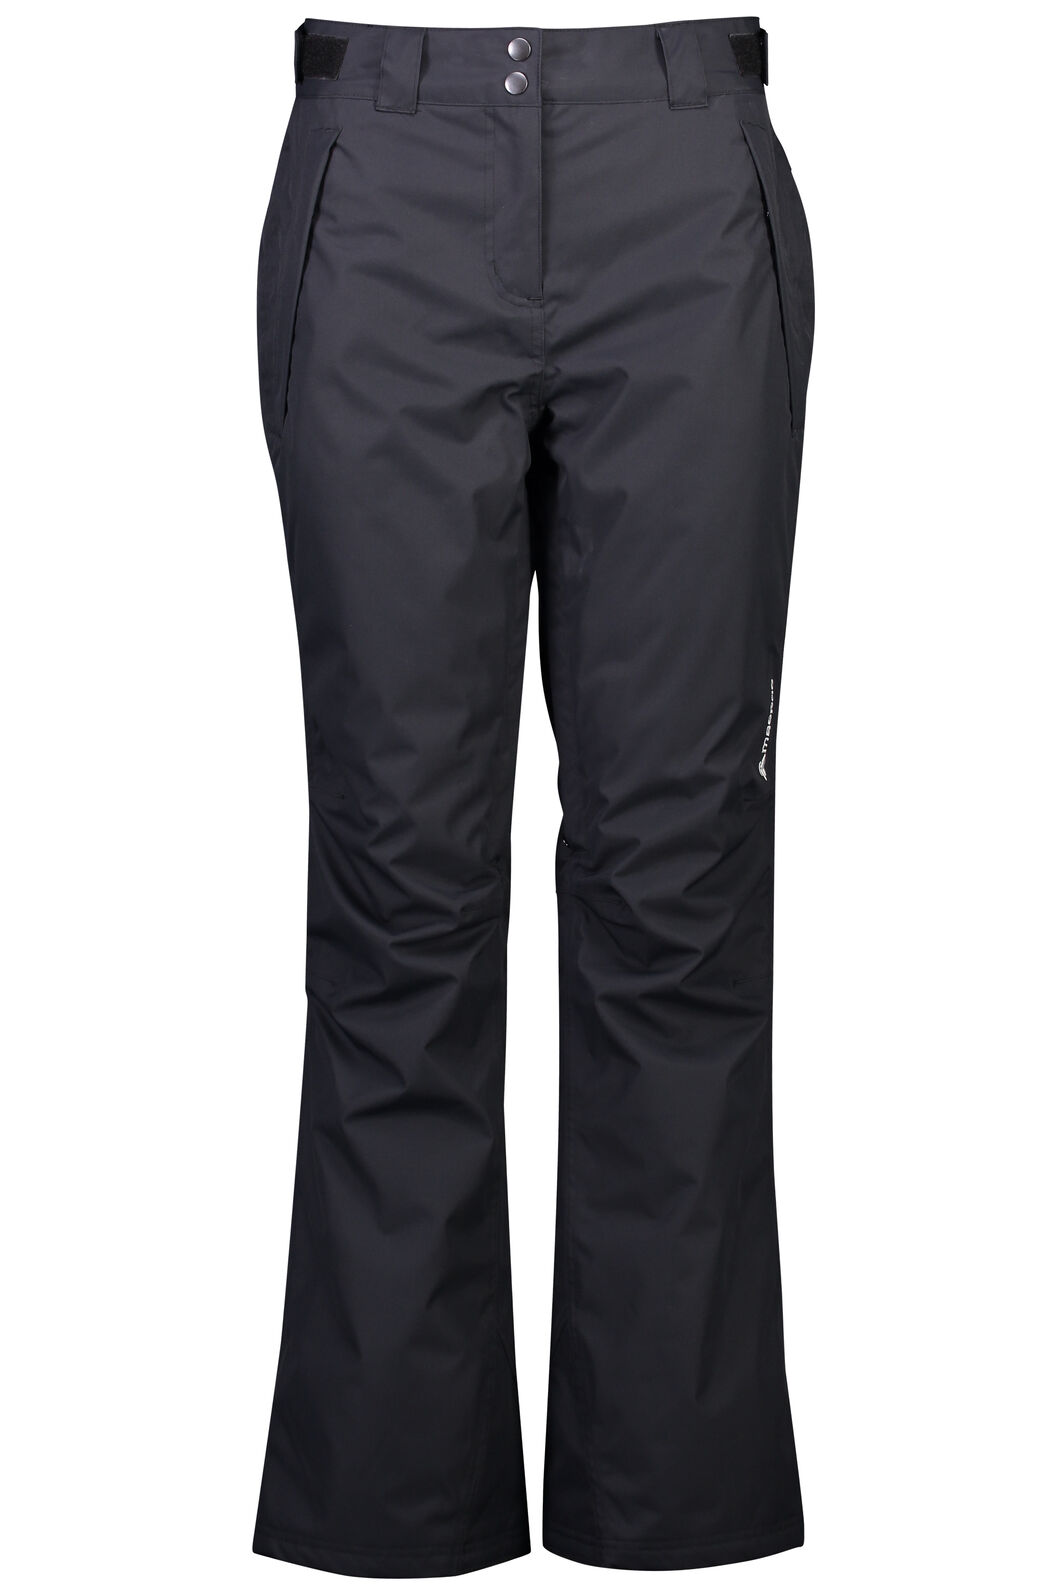 Macpac Powder Ski Pants - Women's, Black, hi-res